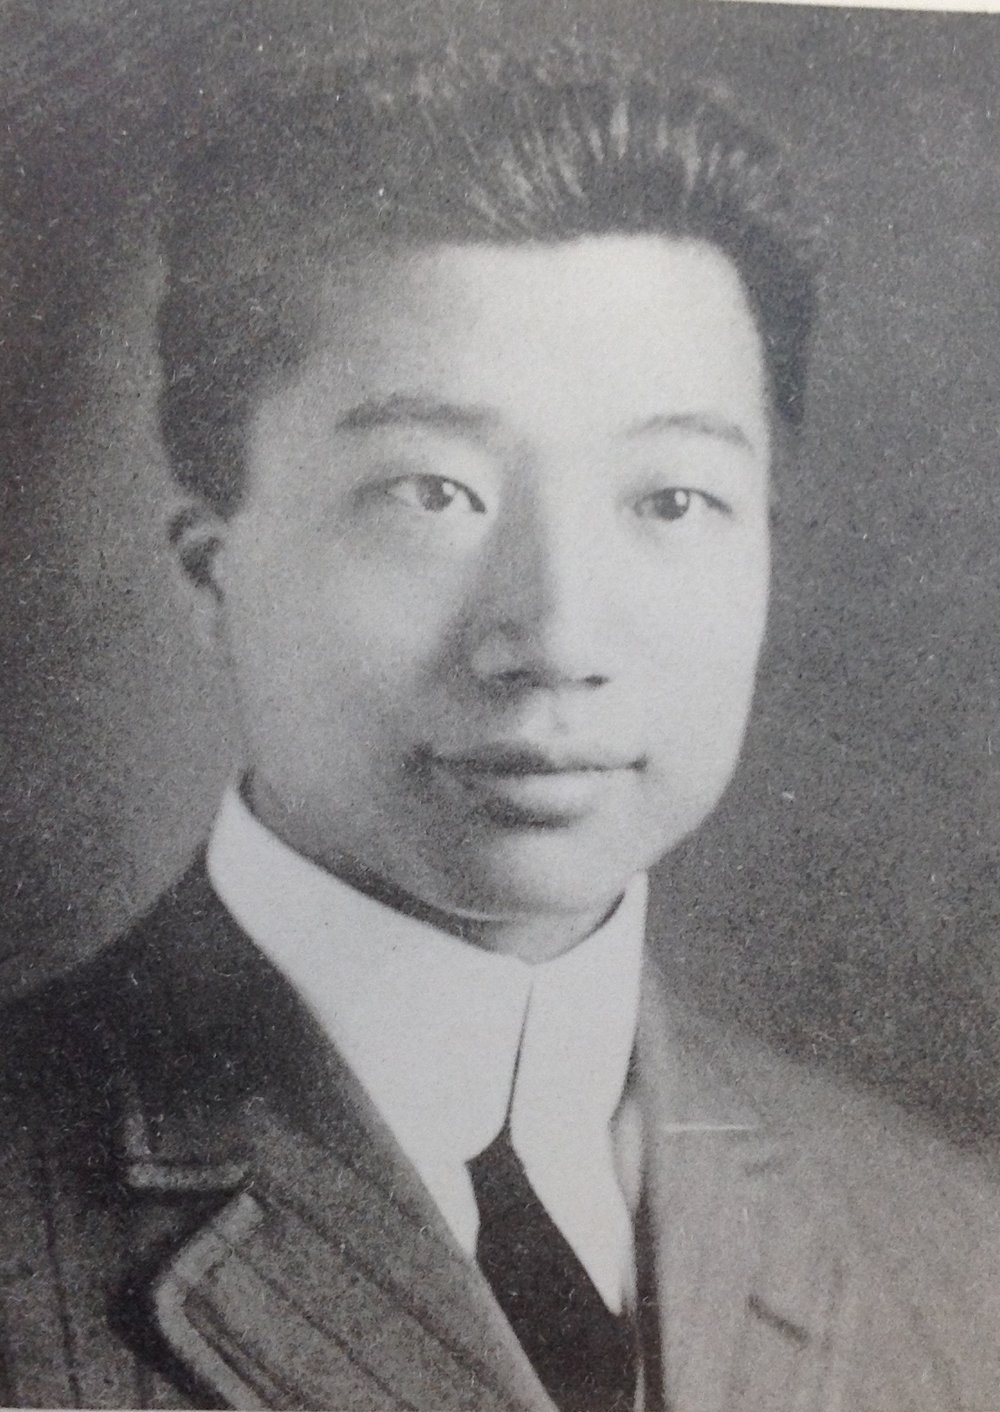 Sidney Y. Chen, MIT Senior Portfolio 1913. Image courtesy MIT Archives and Special Collections.